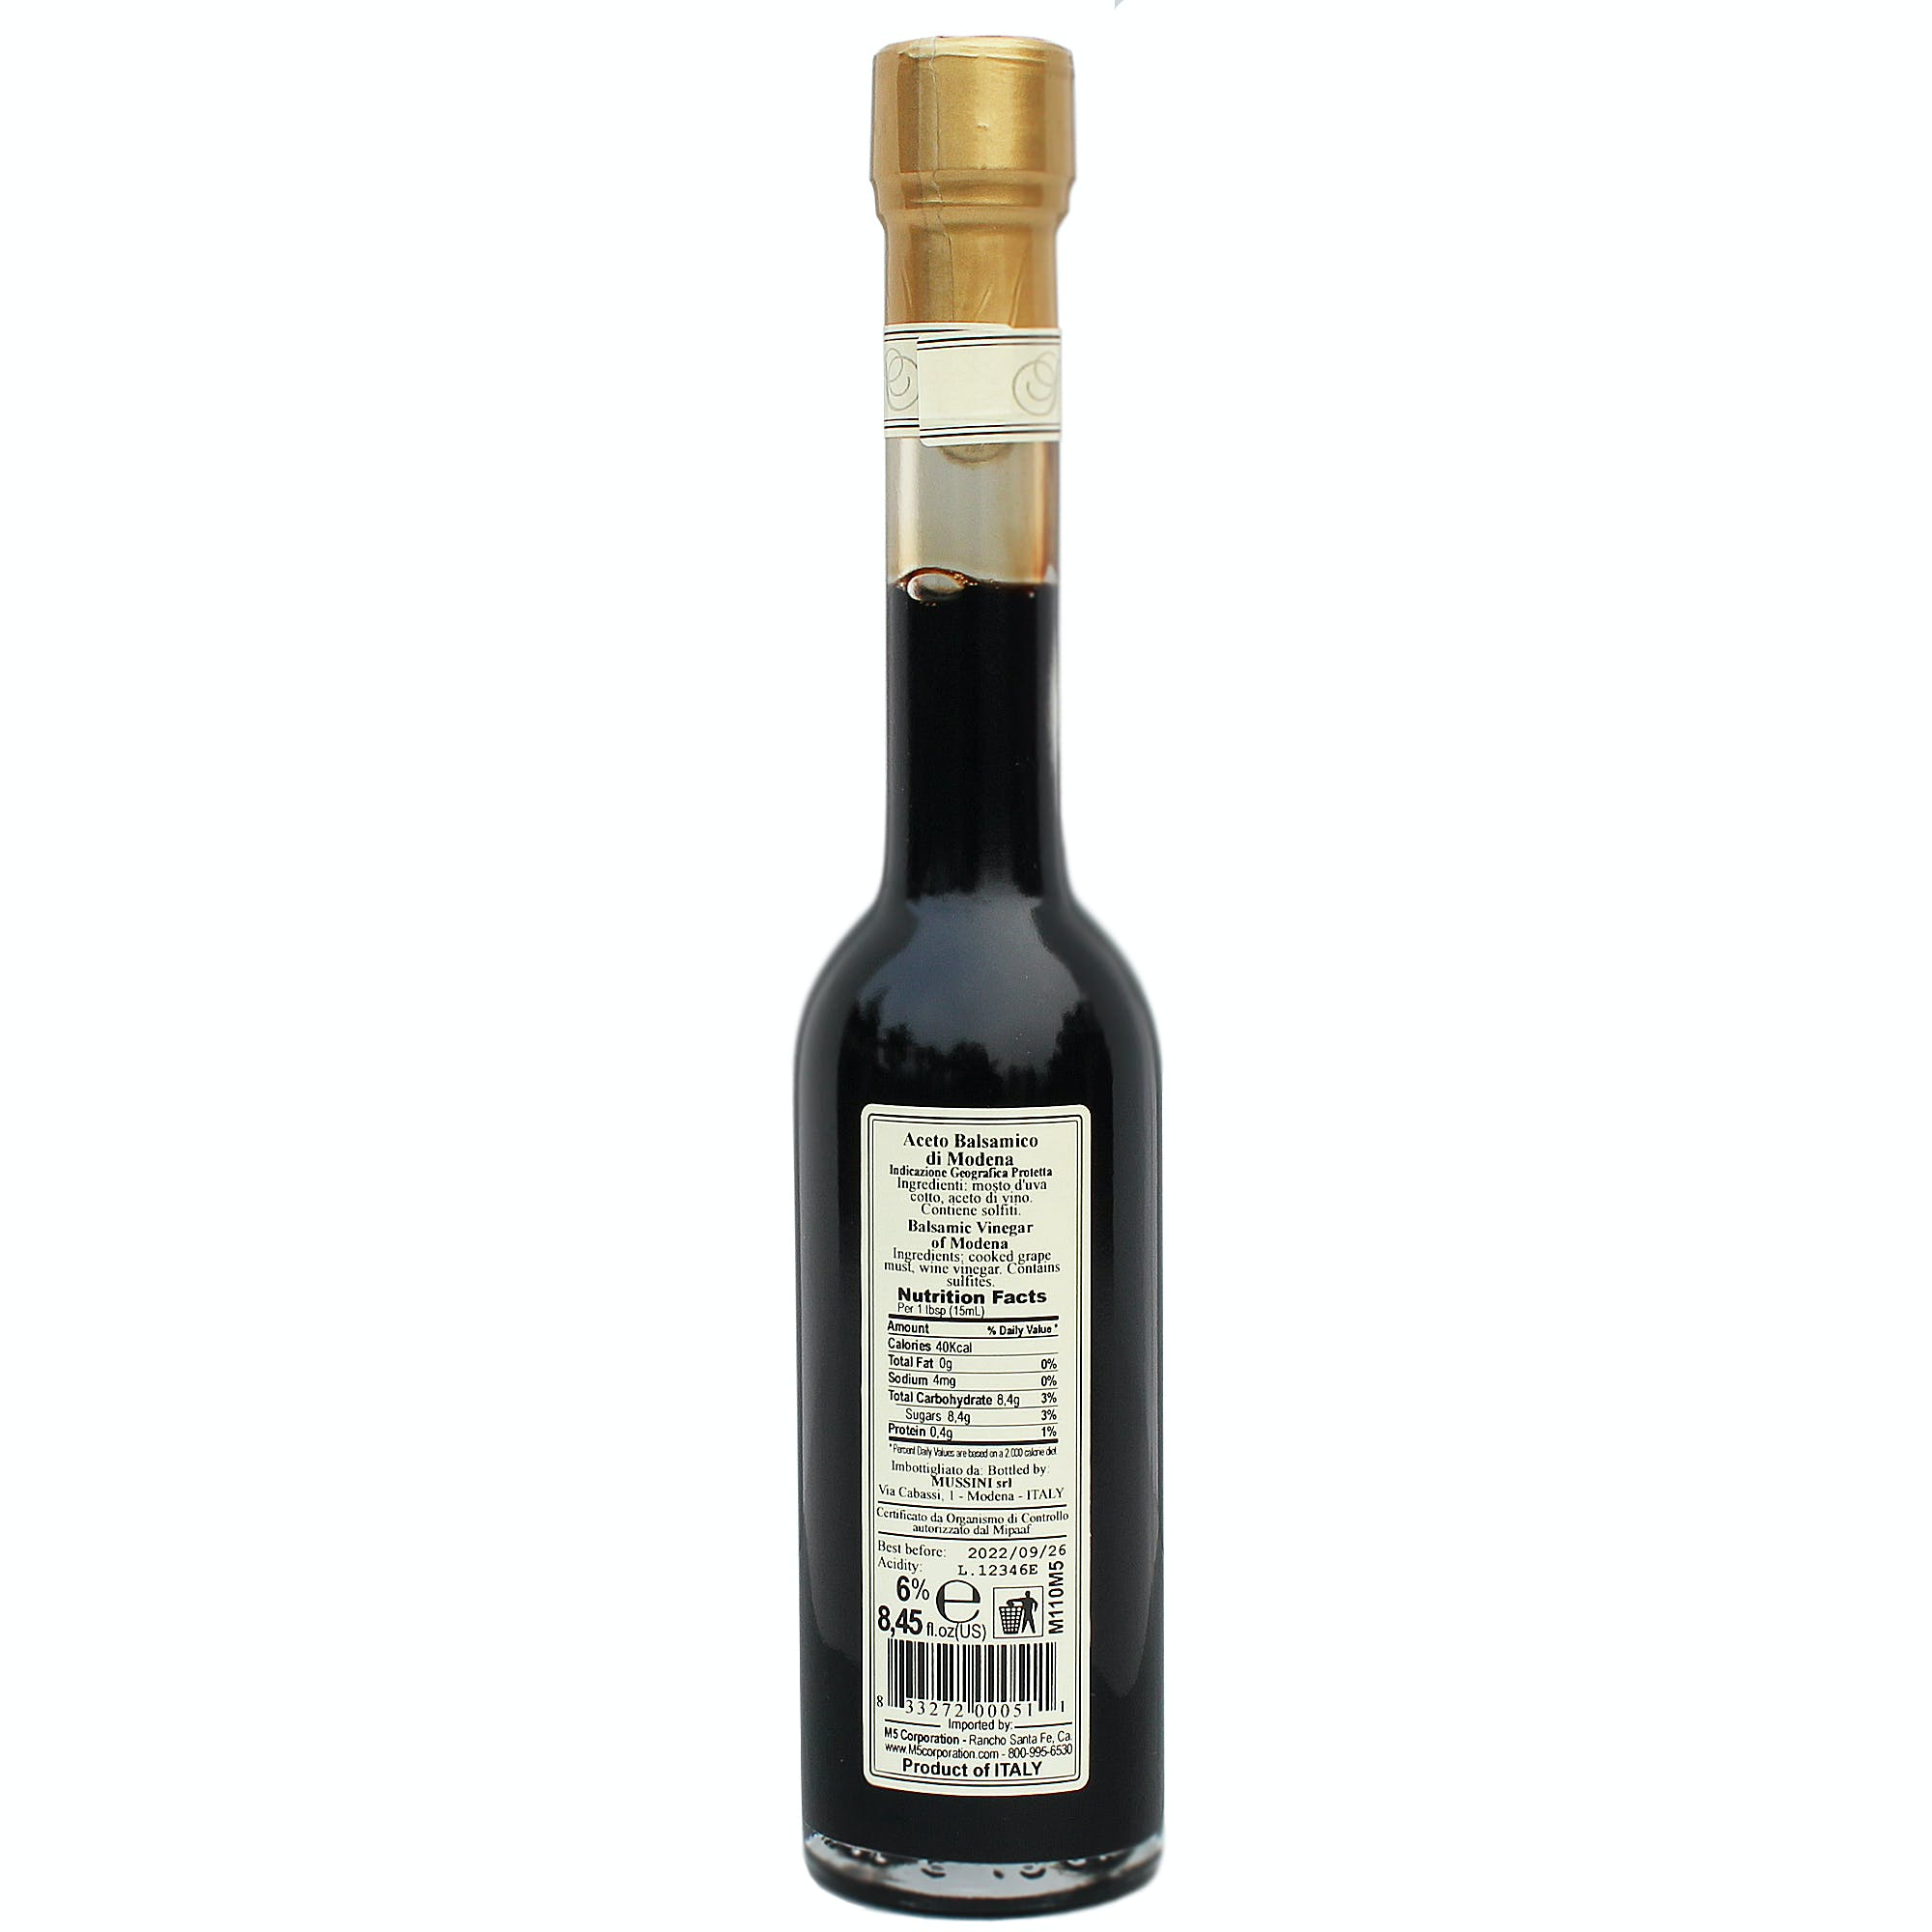 Two Coin 6 Year Balsamic Vinegar - sold by M5 Corporation